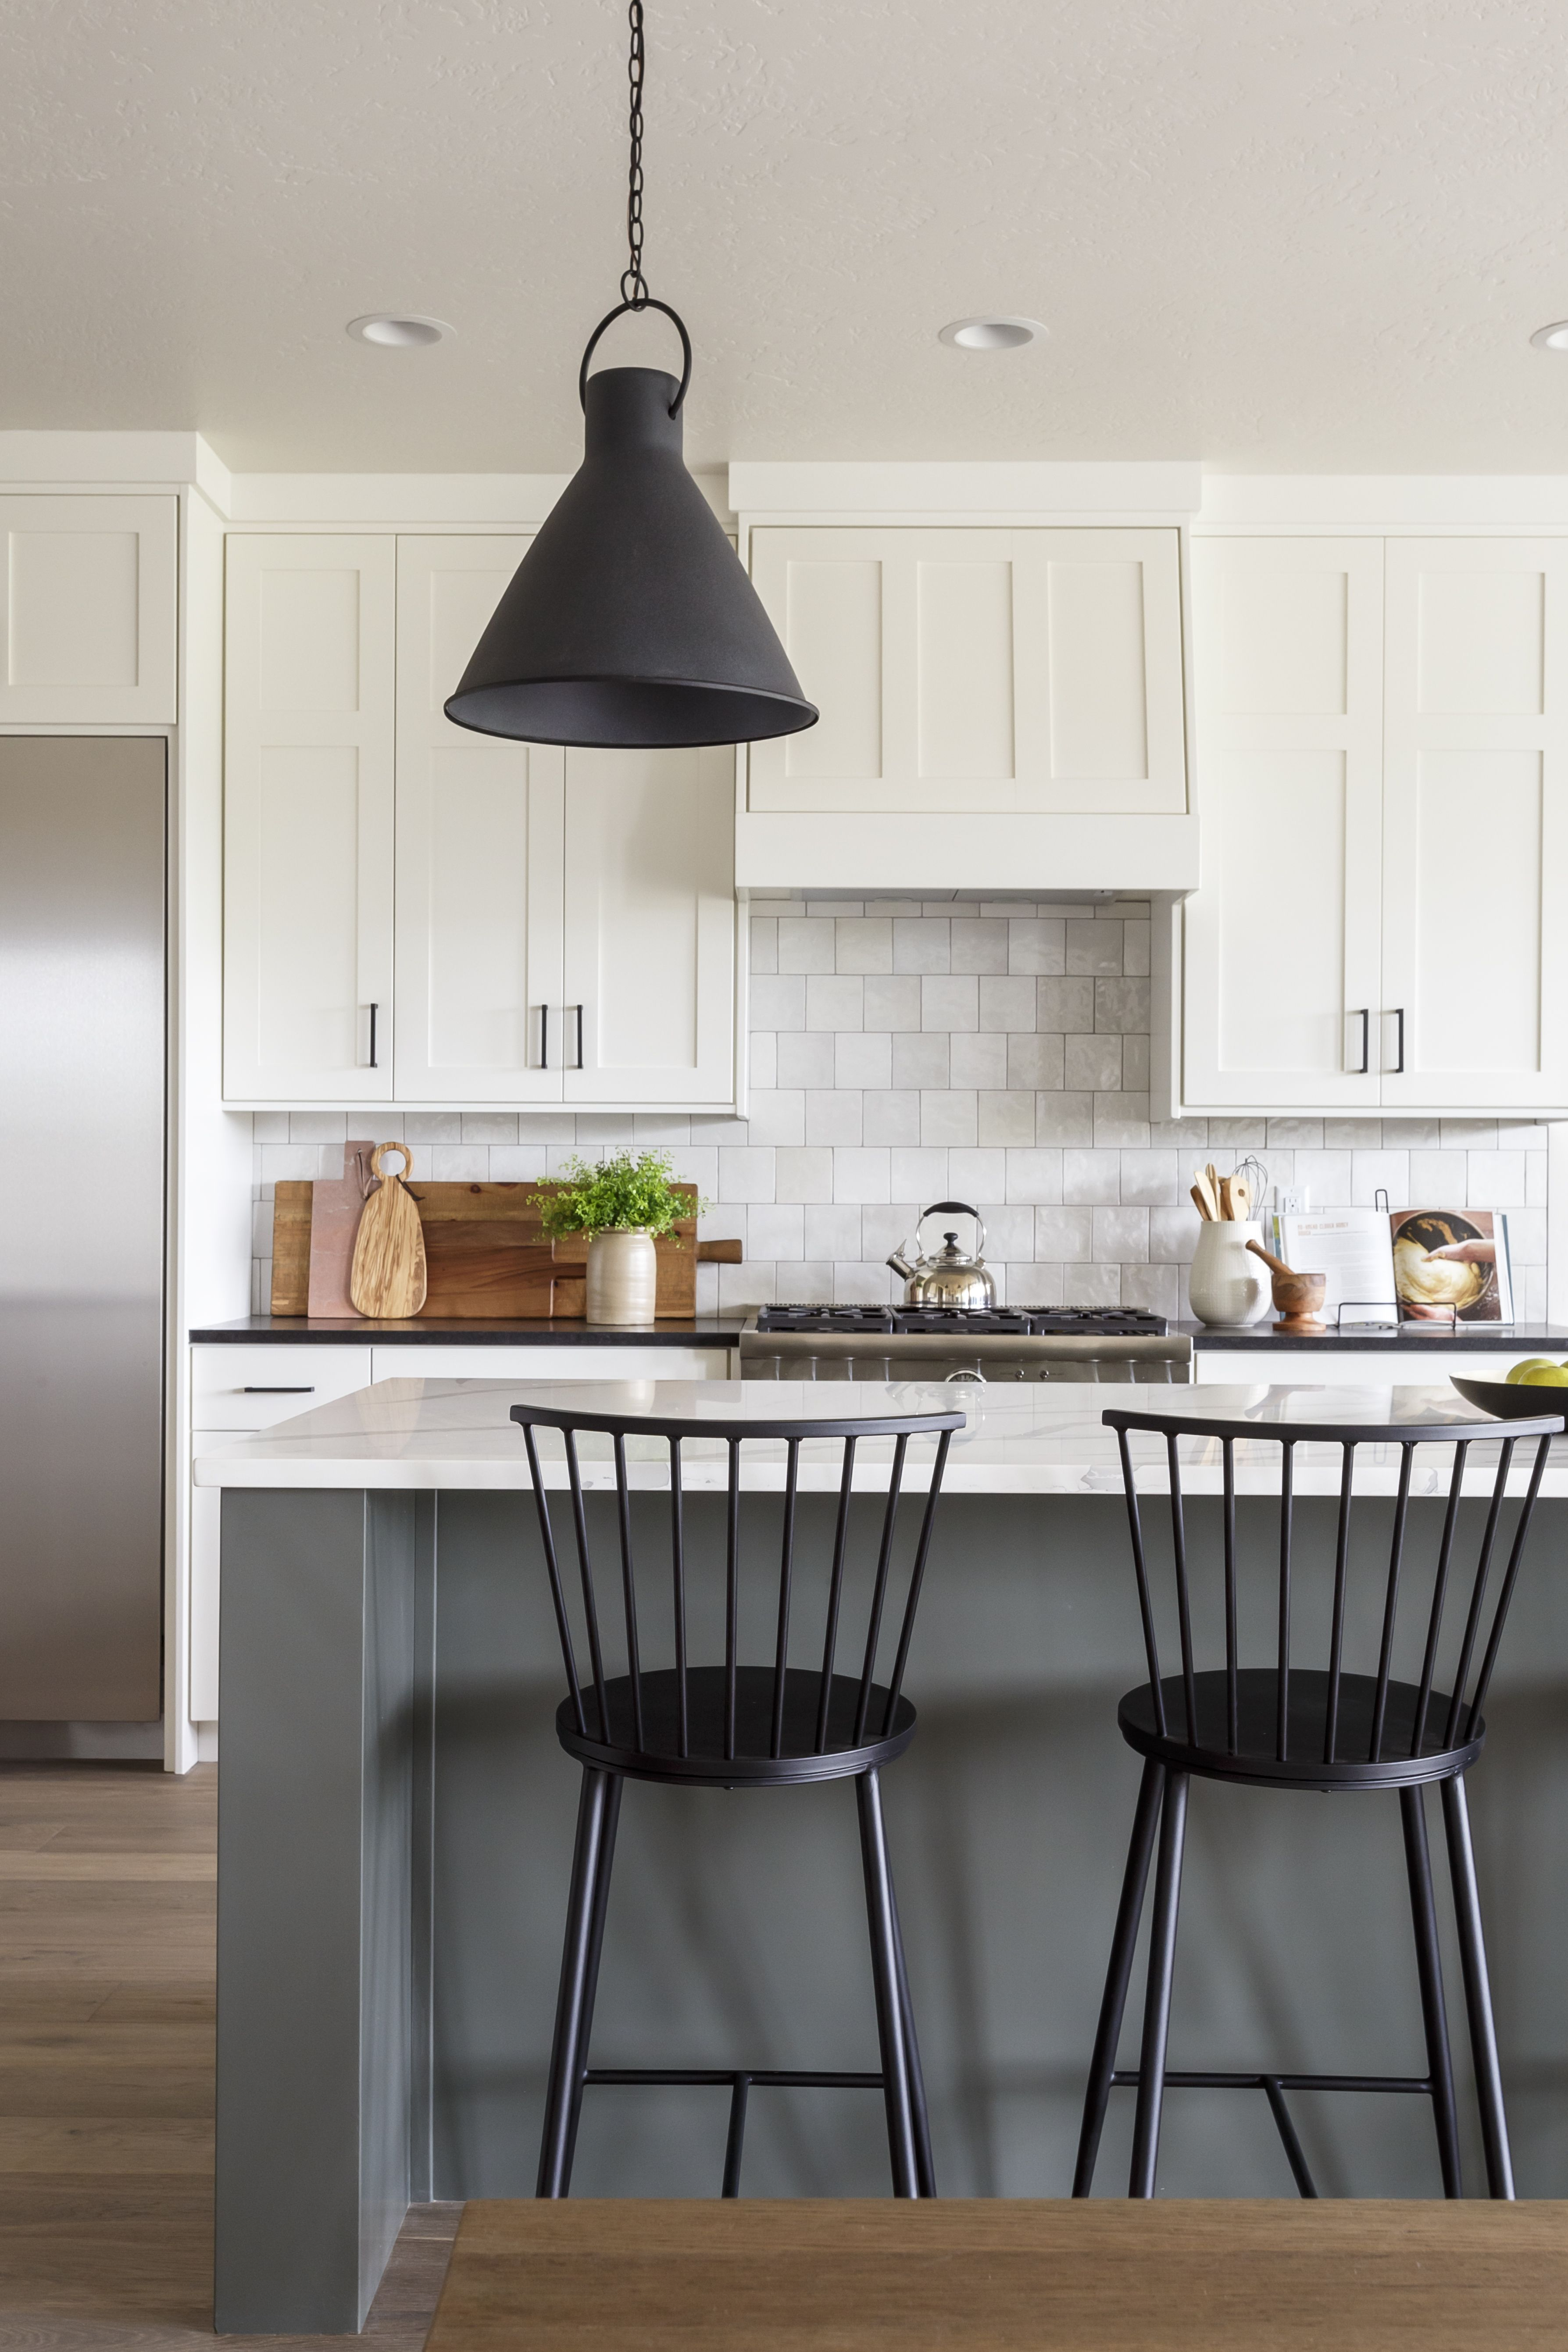 Alturas Homes Clearwater In 2020 Black Kitchen Countertops White Kitchen Design Stools For Kitchen Island